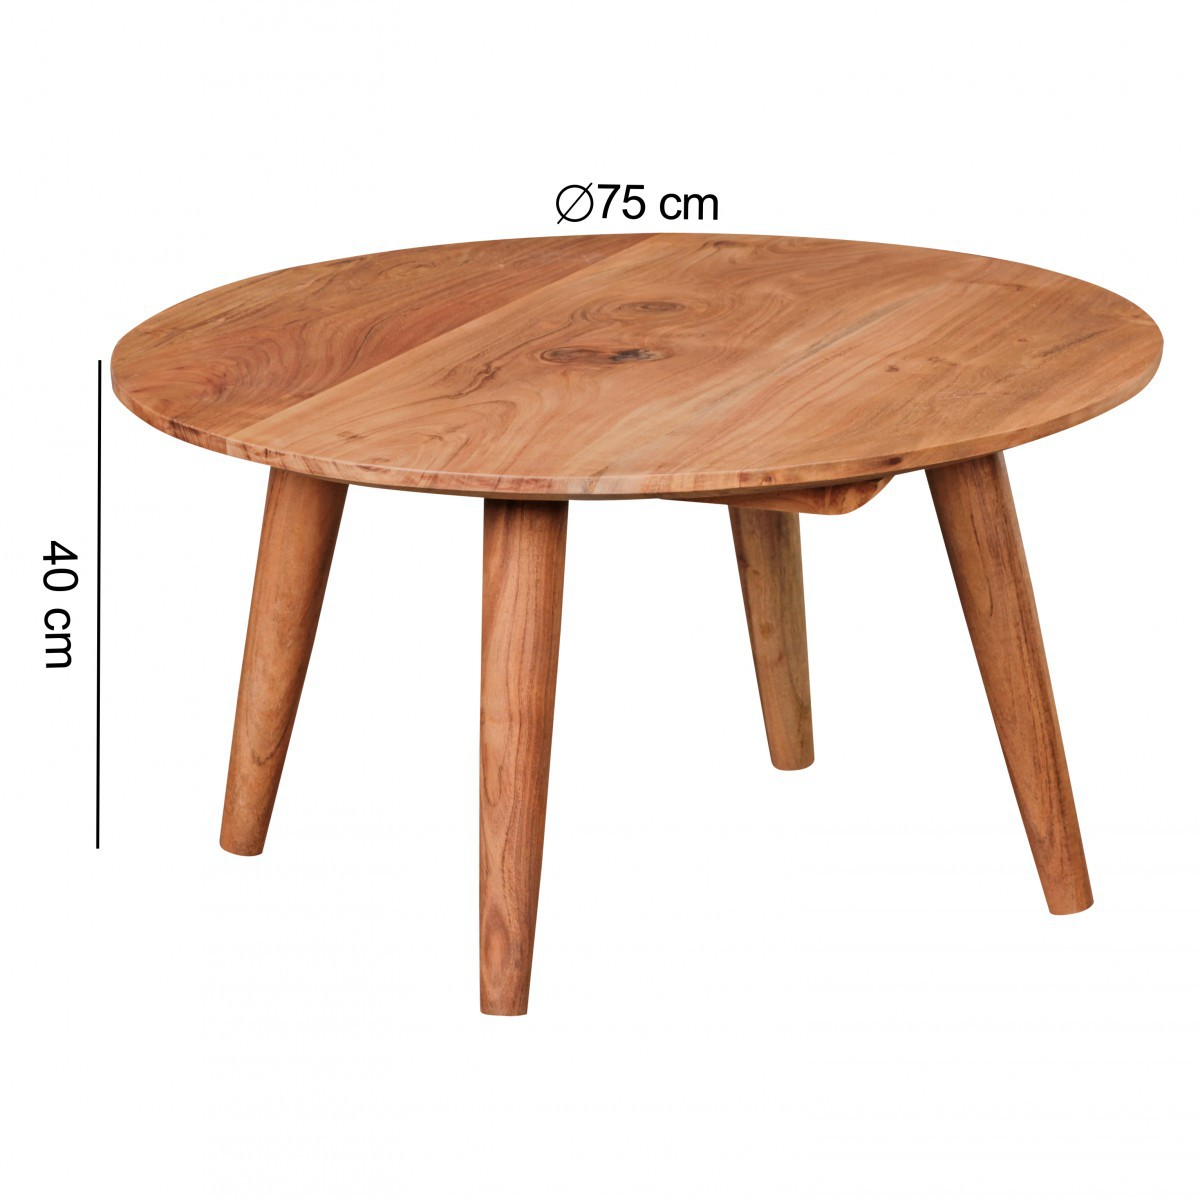 Finebuy table basse en bois massif acacia table basse ronde 75 x 40 cm ferme - Table basse relevable bois ...